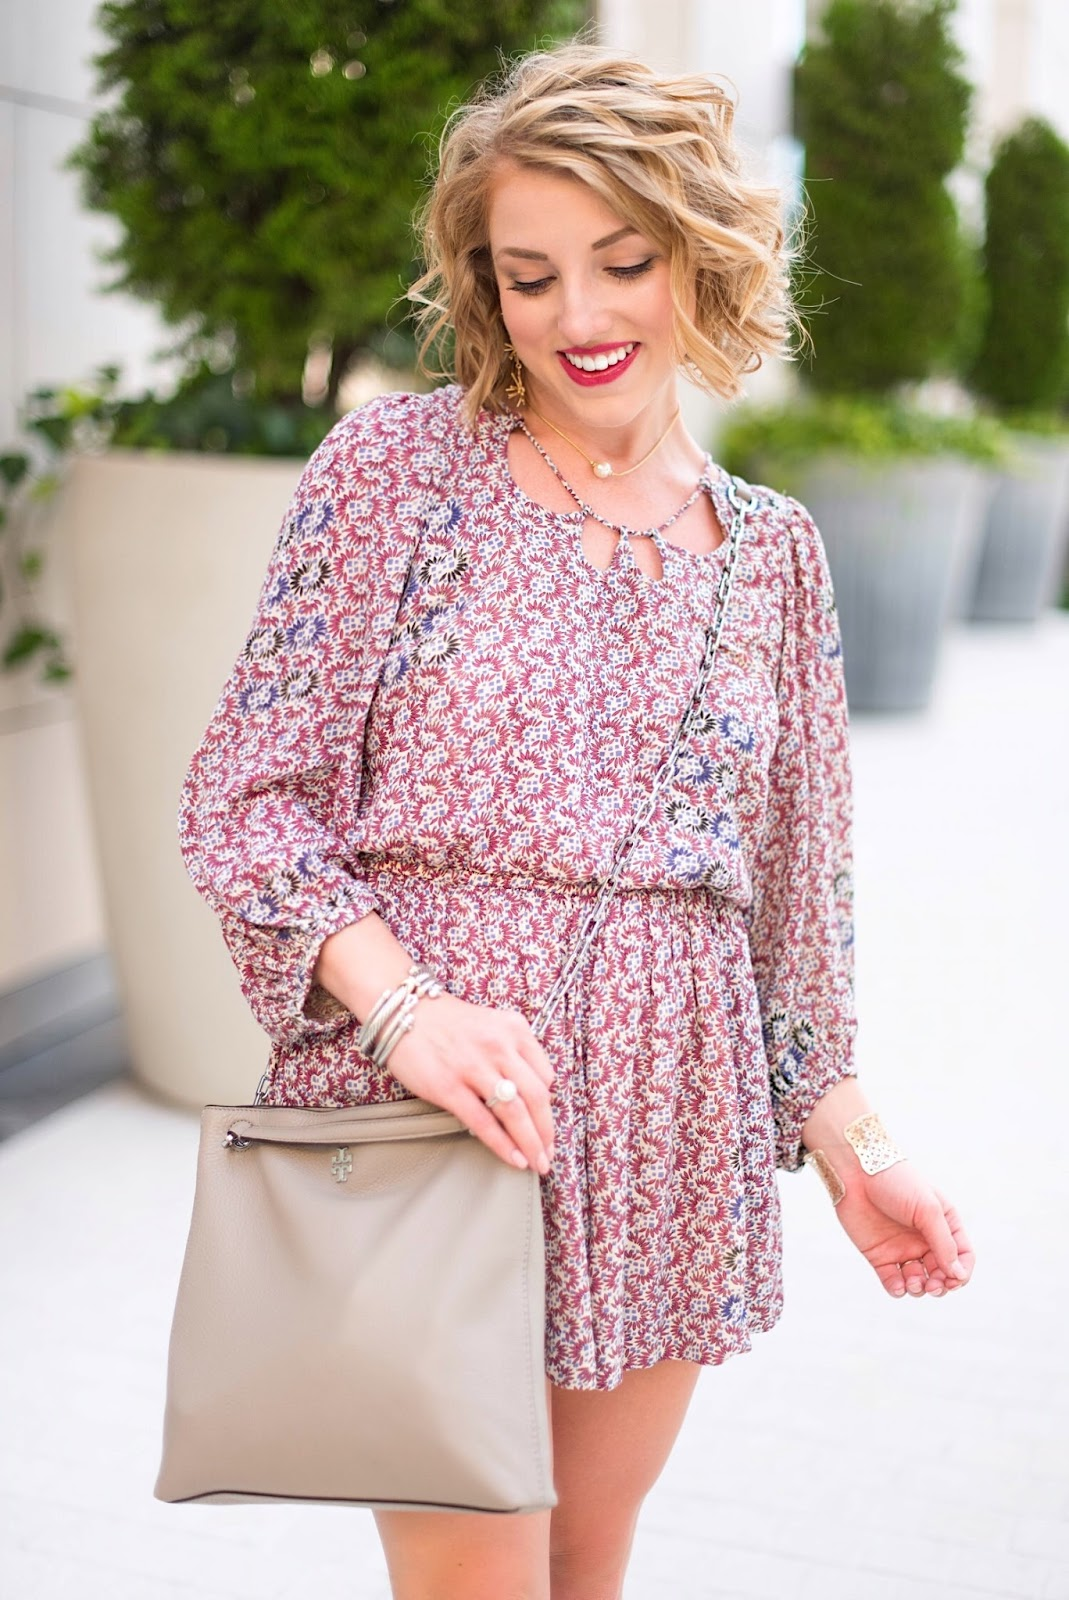 Tory Burch Nordstrom Anniversary Sale - Click through to see more on Something Delightful!